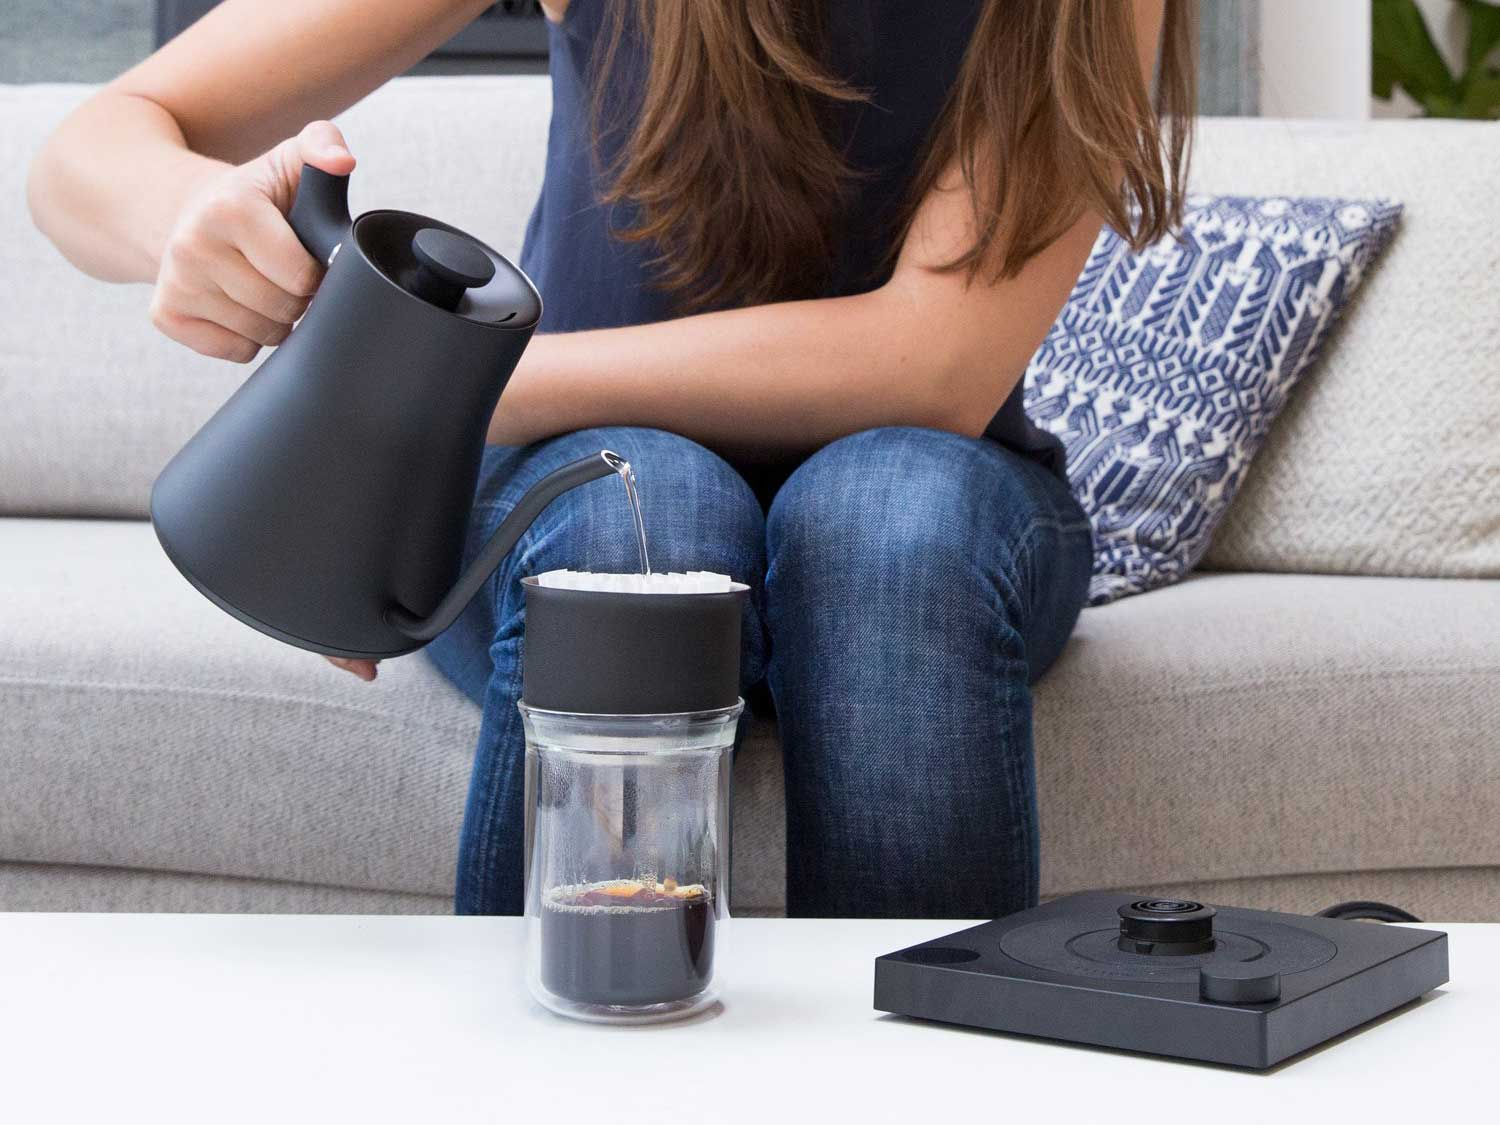 Pouring hot water out of electric kettle over coffee